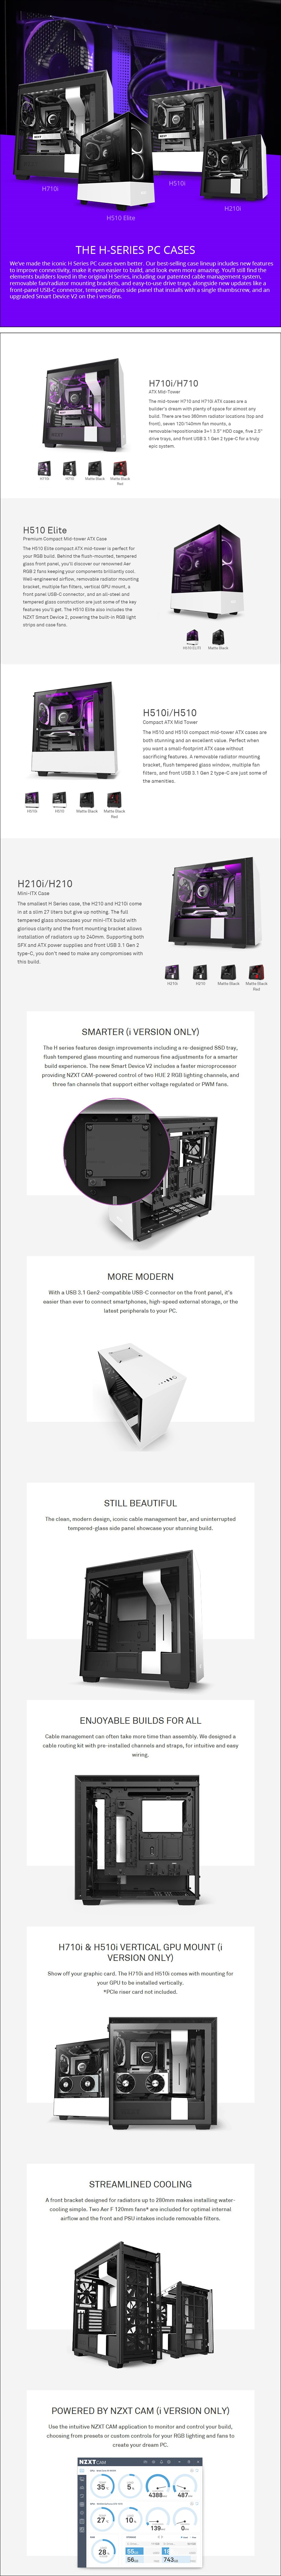 NZXT H210 Tempered Glass Mini-ITX Case - Overview 1